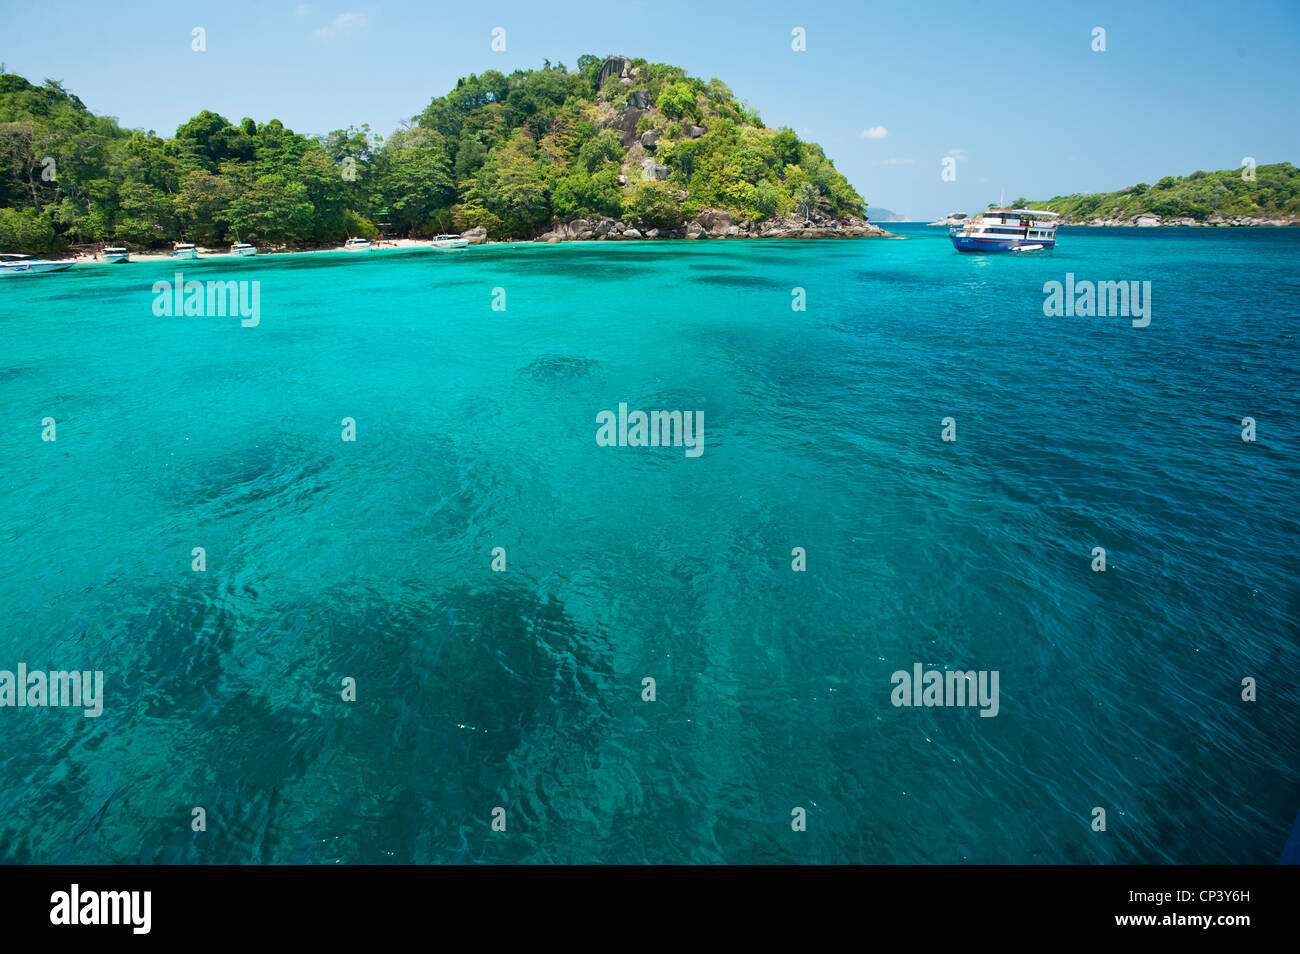 space for text layout island water sea blue deep blue sun holidays happy holiday beach  fun funny sun water sea - Stock Image